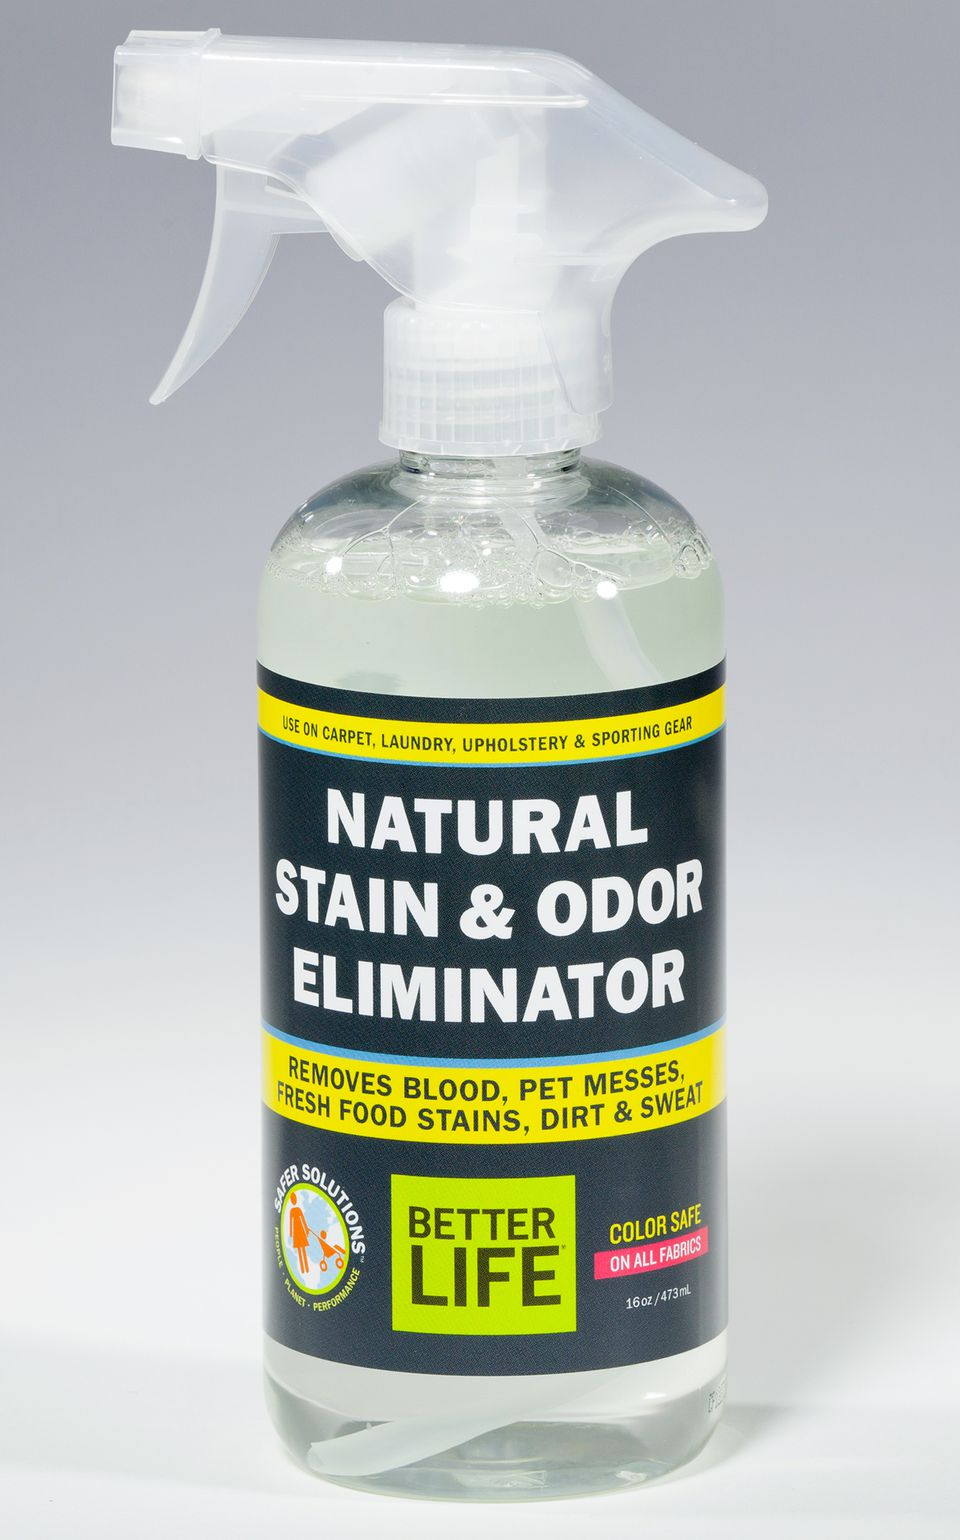 Better Life Stain & Odor Eliminator